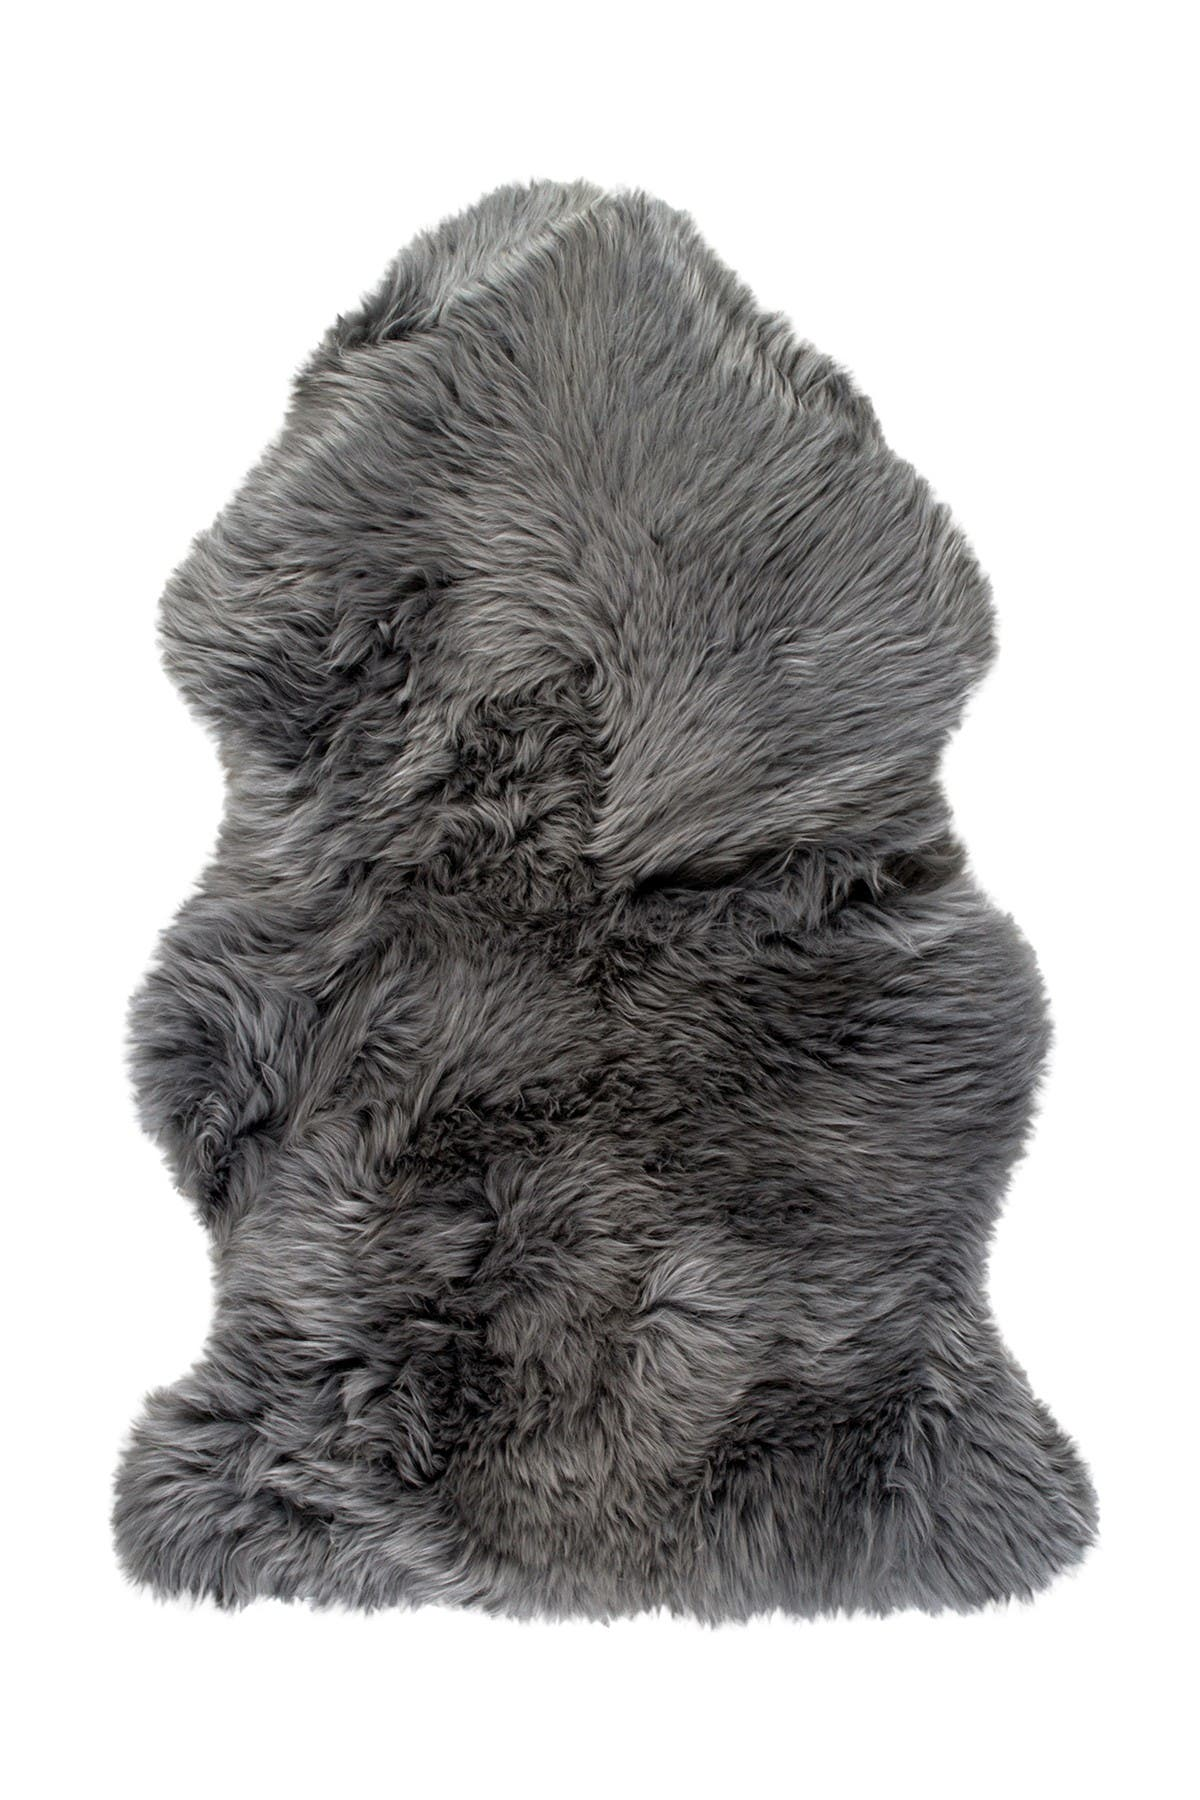 Image of Natural New Zealand Genuine Sheepskin Throw - 2ft x 3ft - Grey